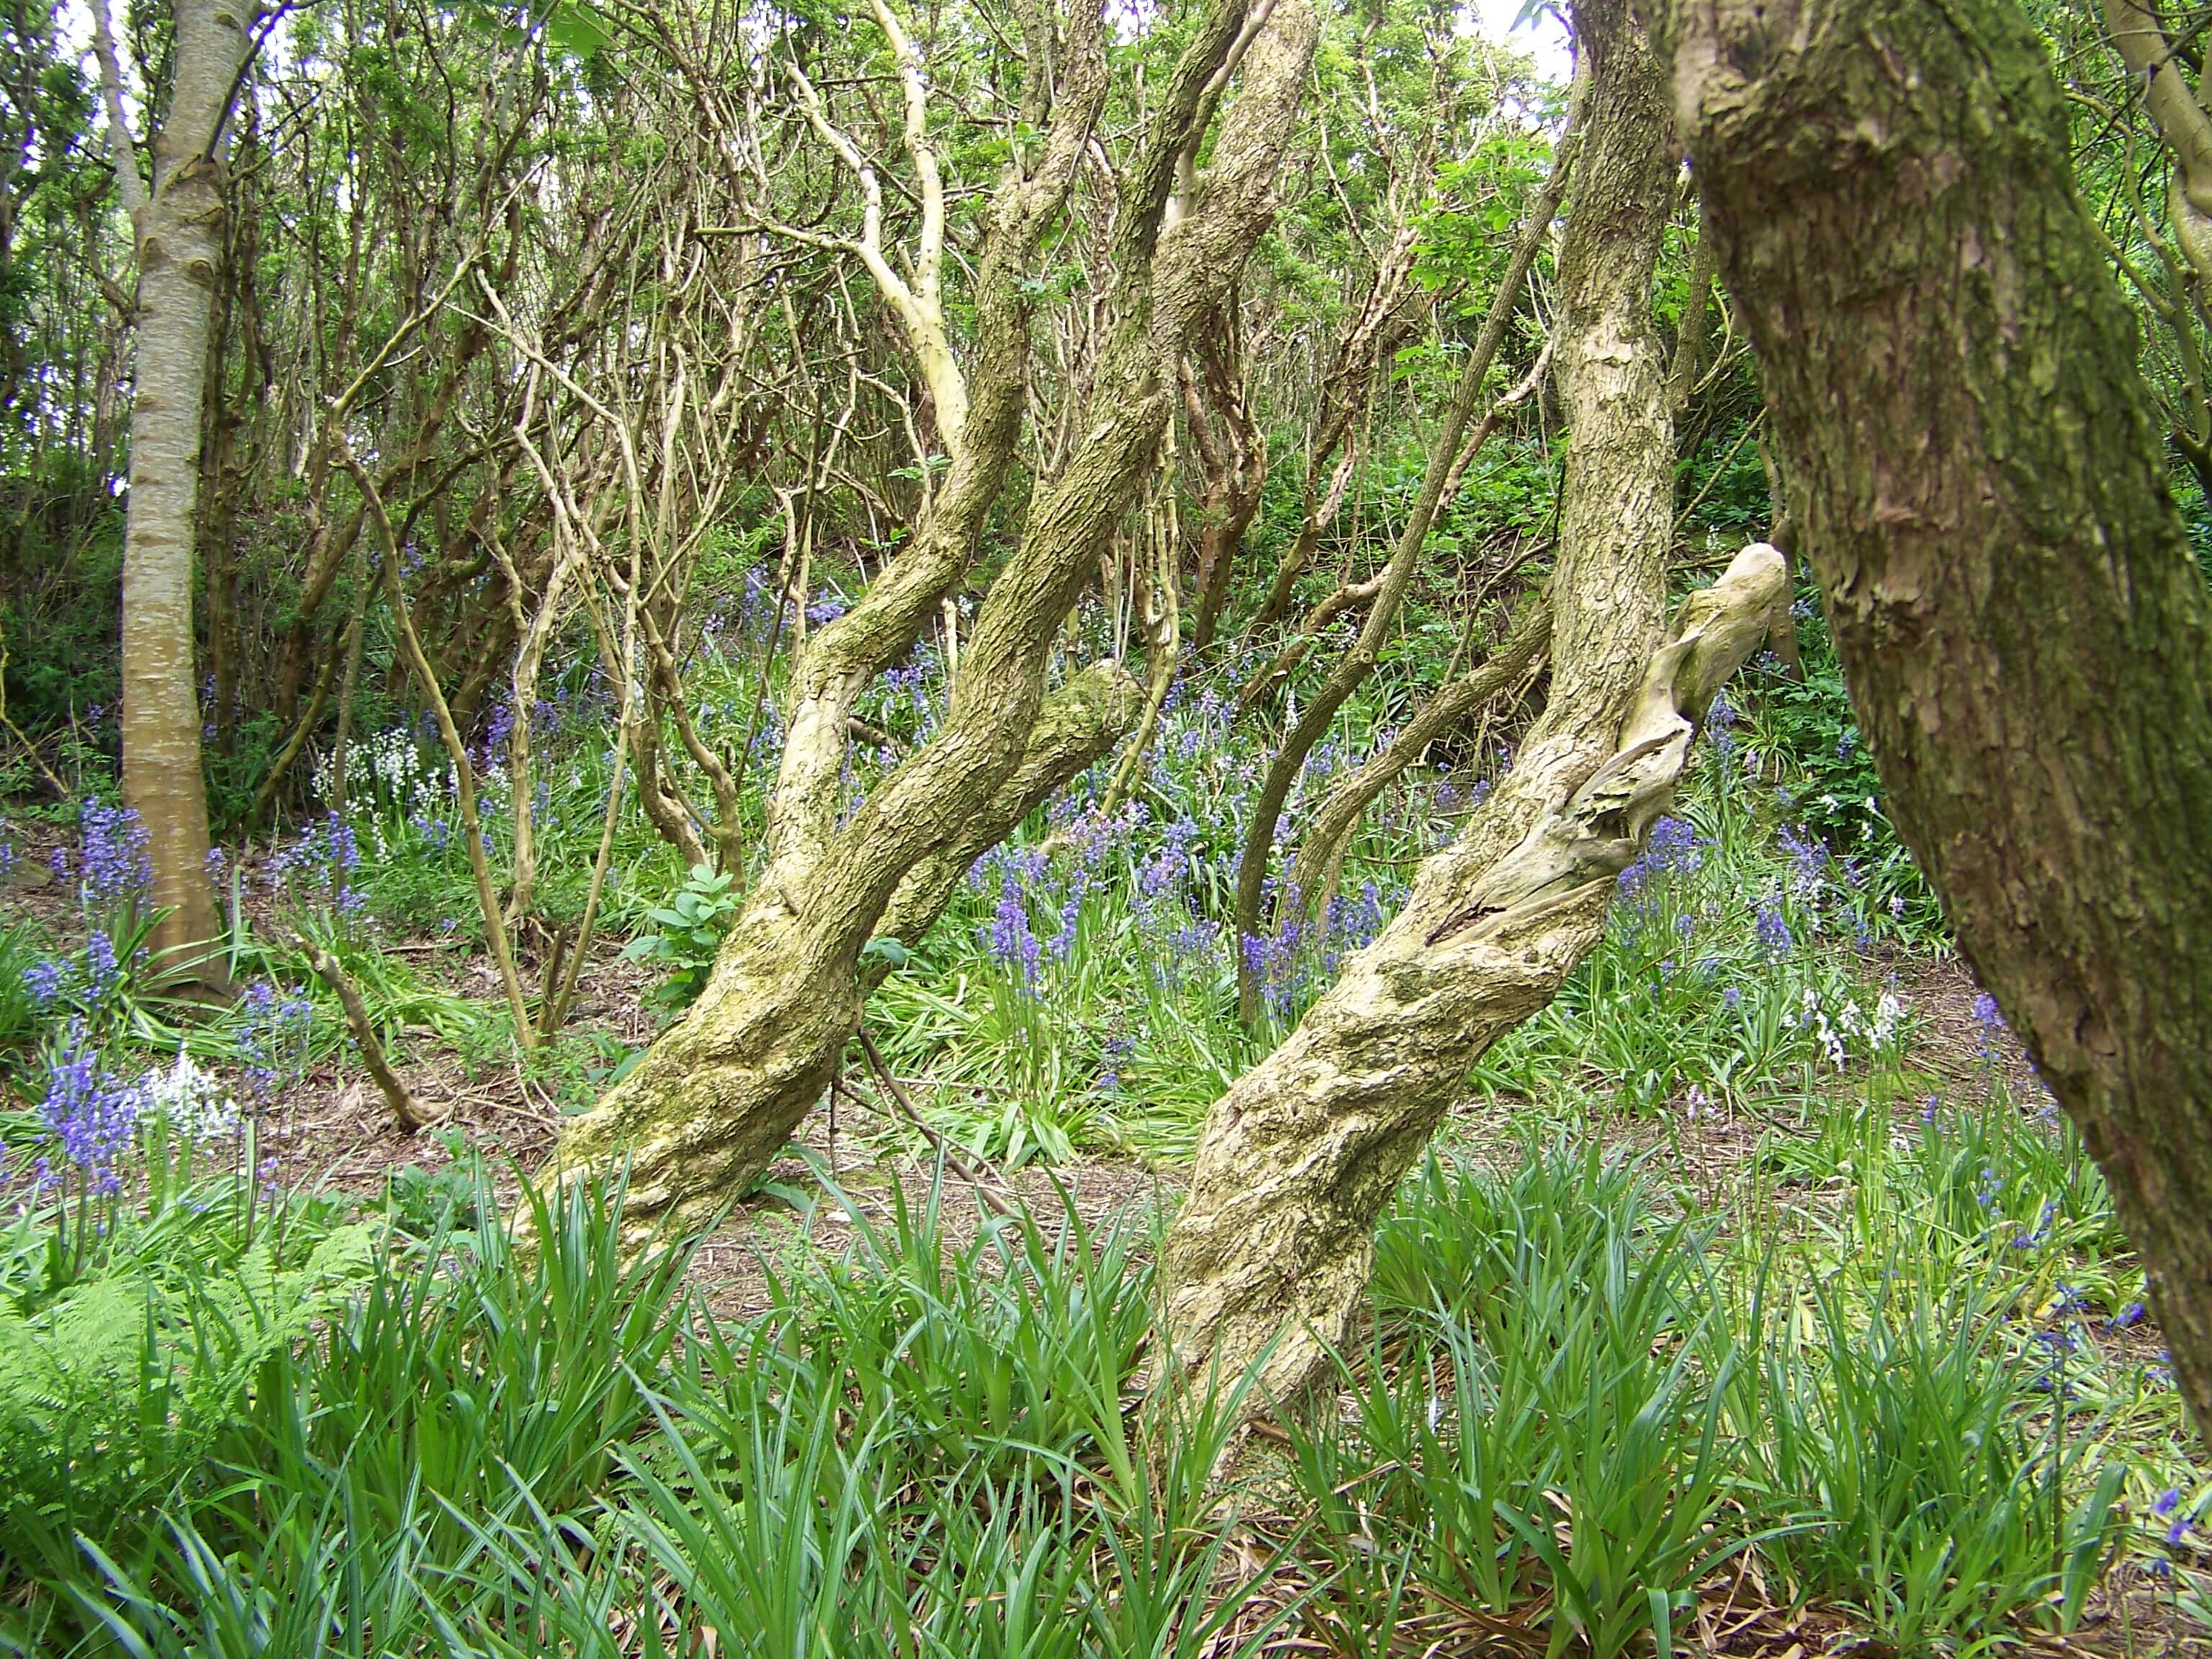 Twisted trees in Happy Valley